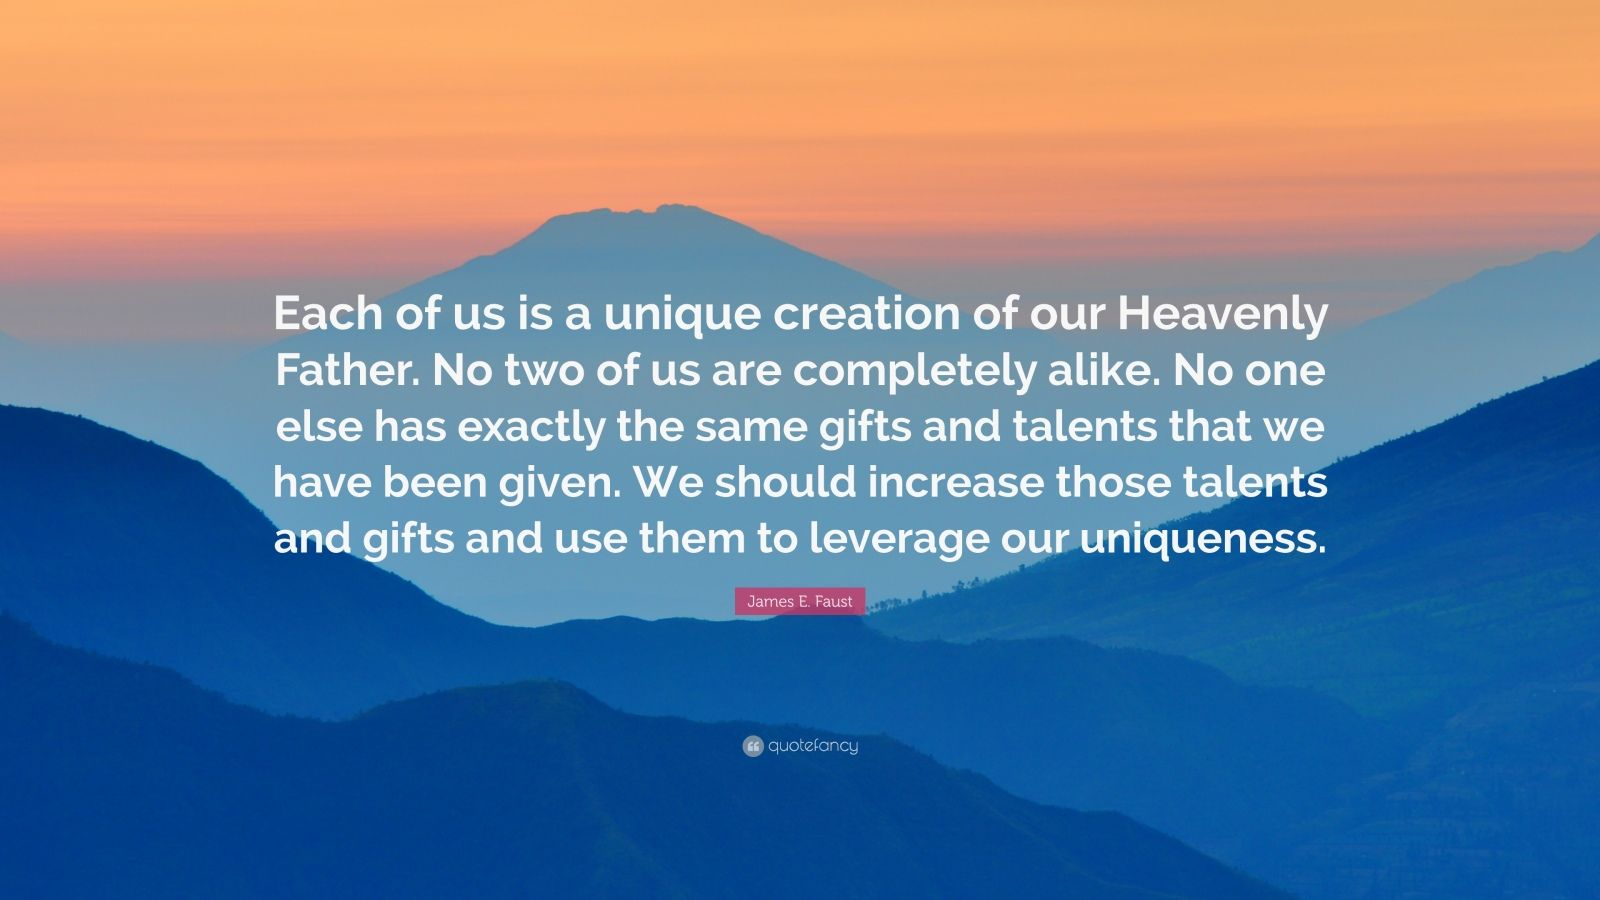 "James E. Faust Quote: ""Each of us is a unique creation of our Heavenly Father. No two of us are completely alike. No one else has exactly the same gifts and talents that we have been given. We should increase those talents and gifts and use them to leverage our uniqueness."""